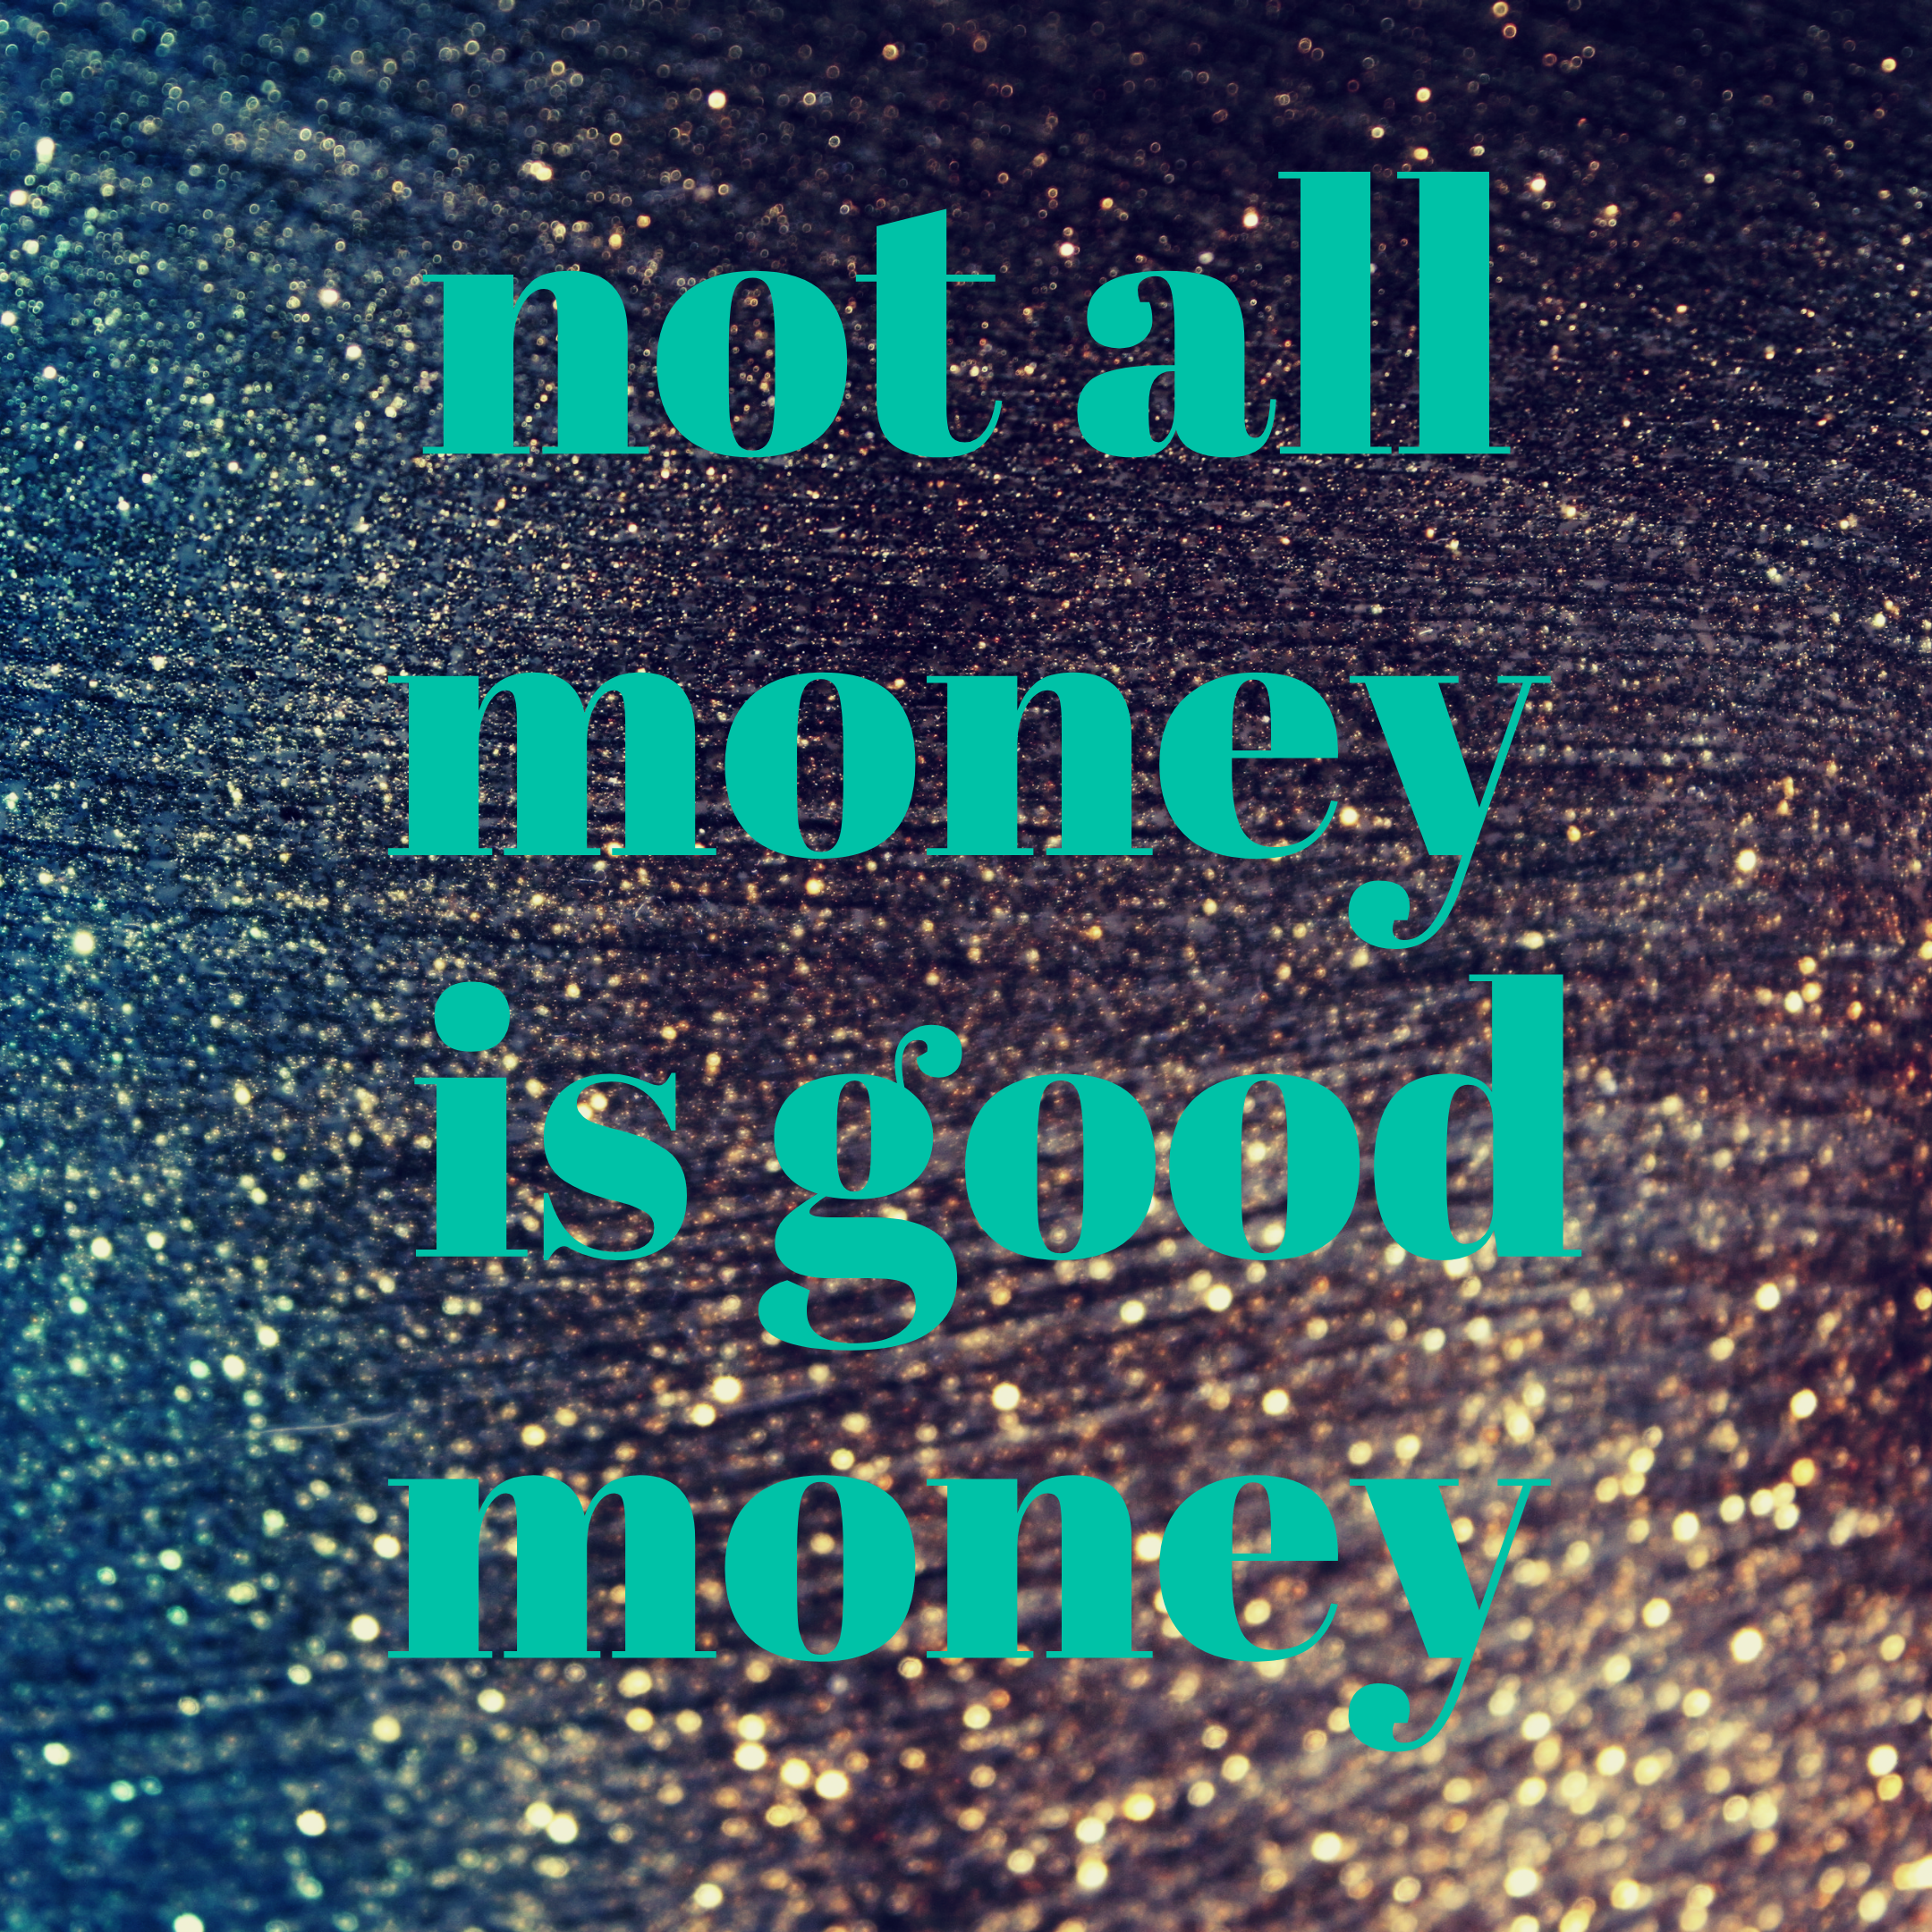 Not all money is good money.